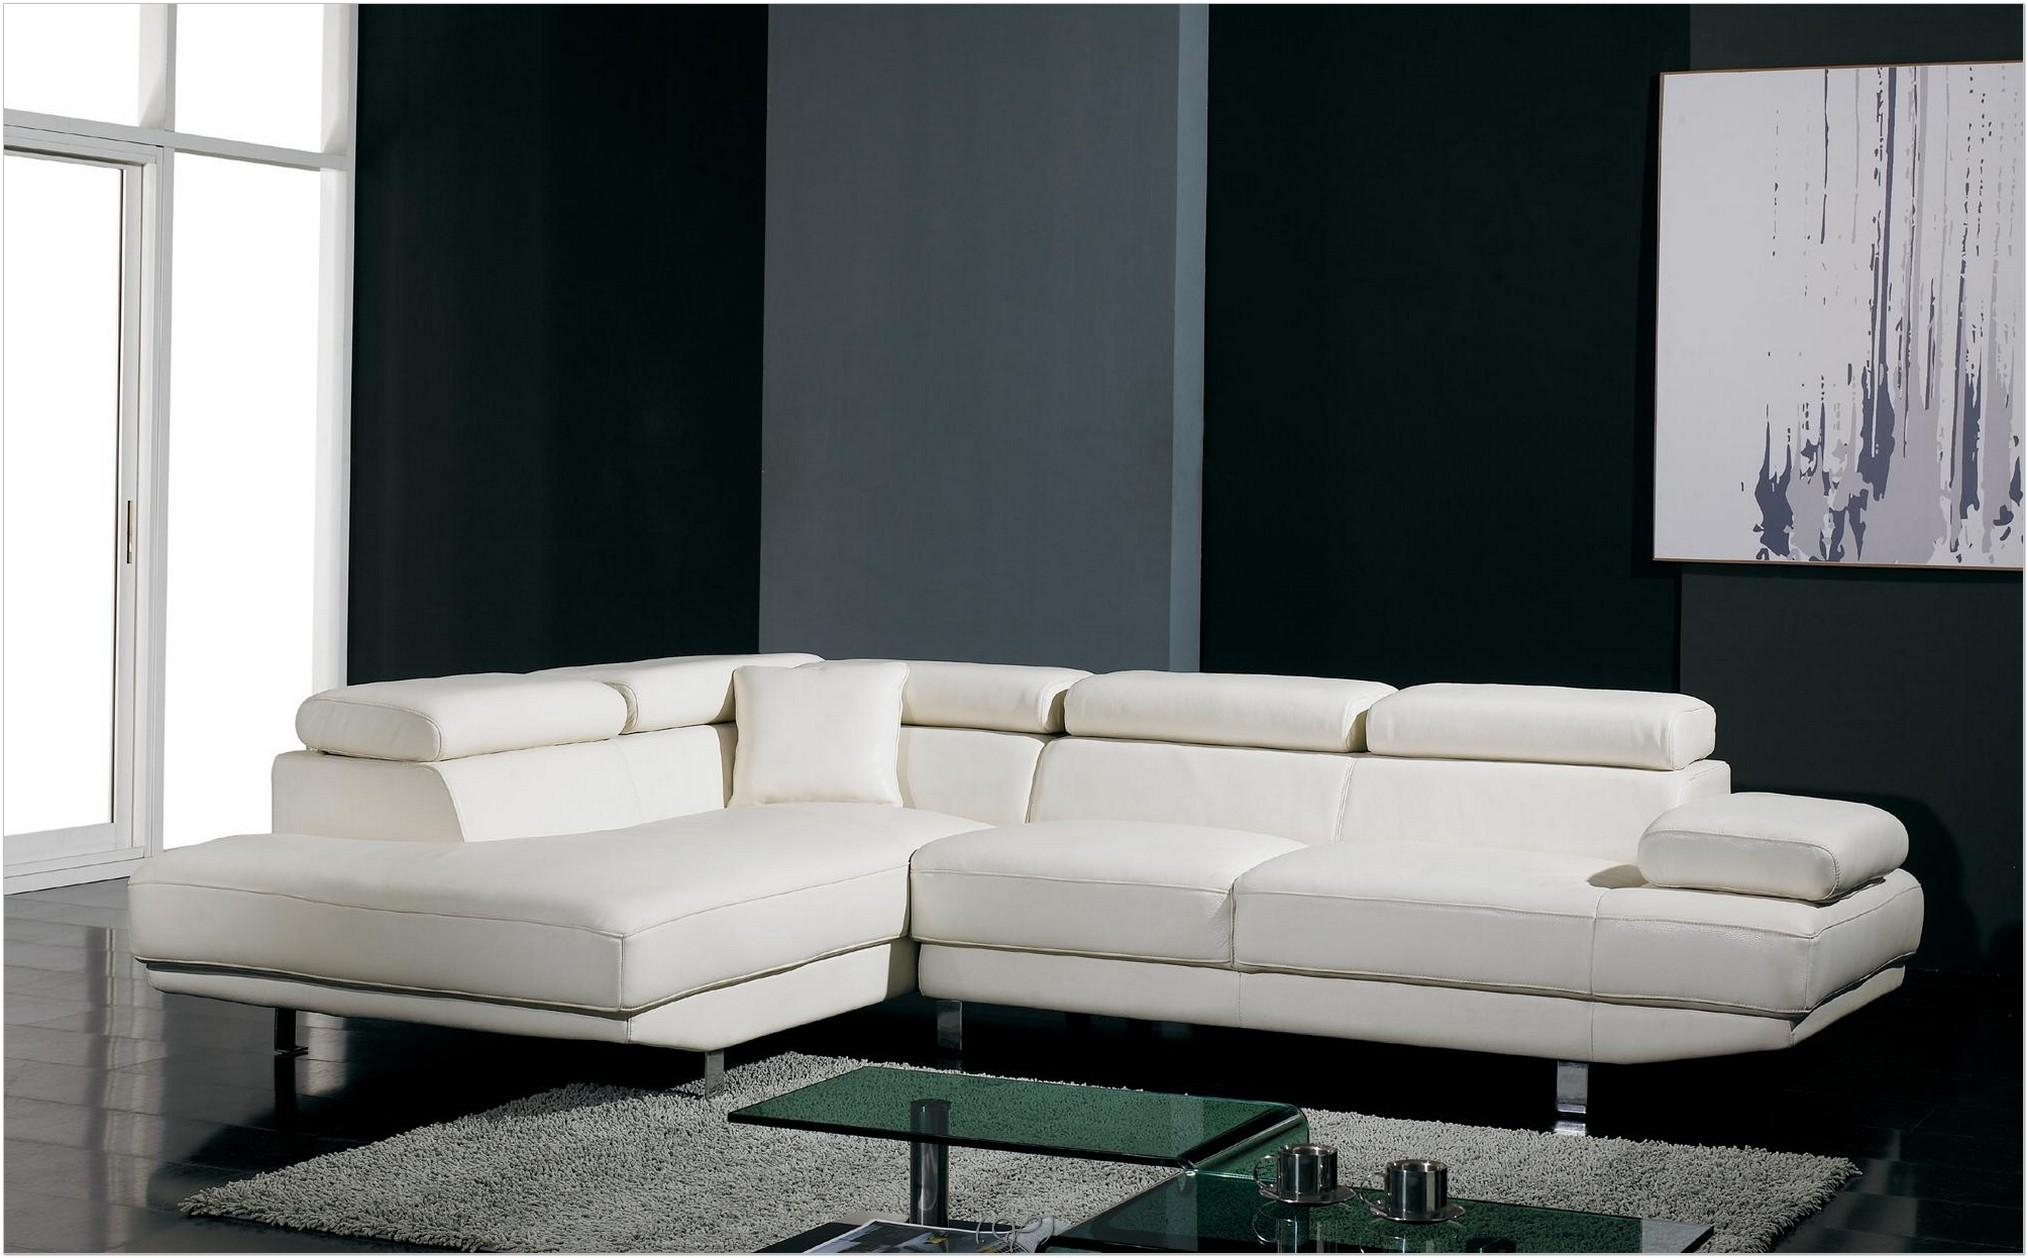 Interior : Modern Couches White Leather Sofa Royal Blue Sectional With Regard To White Modern Sofas (Image 7 of 20)